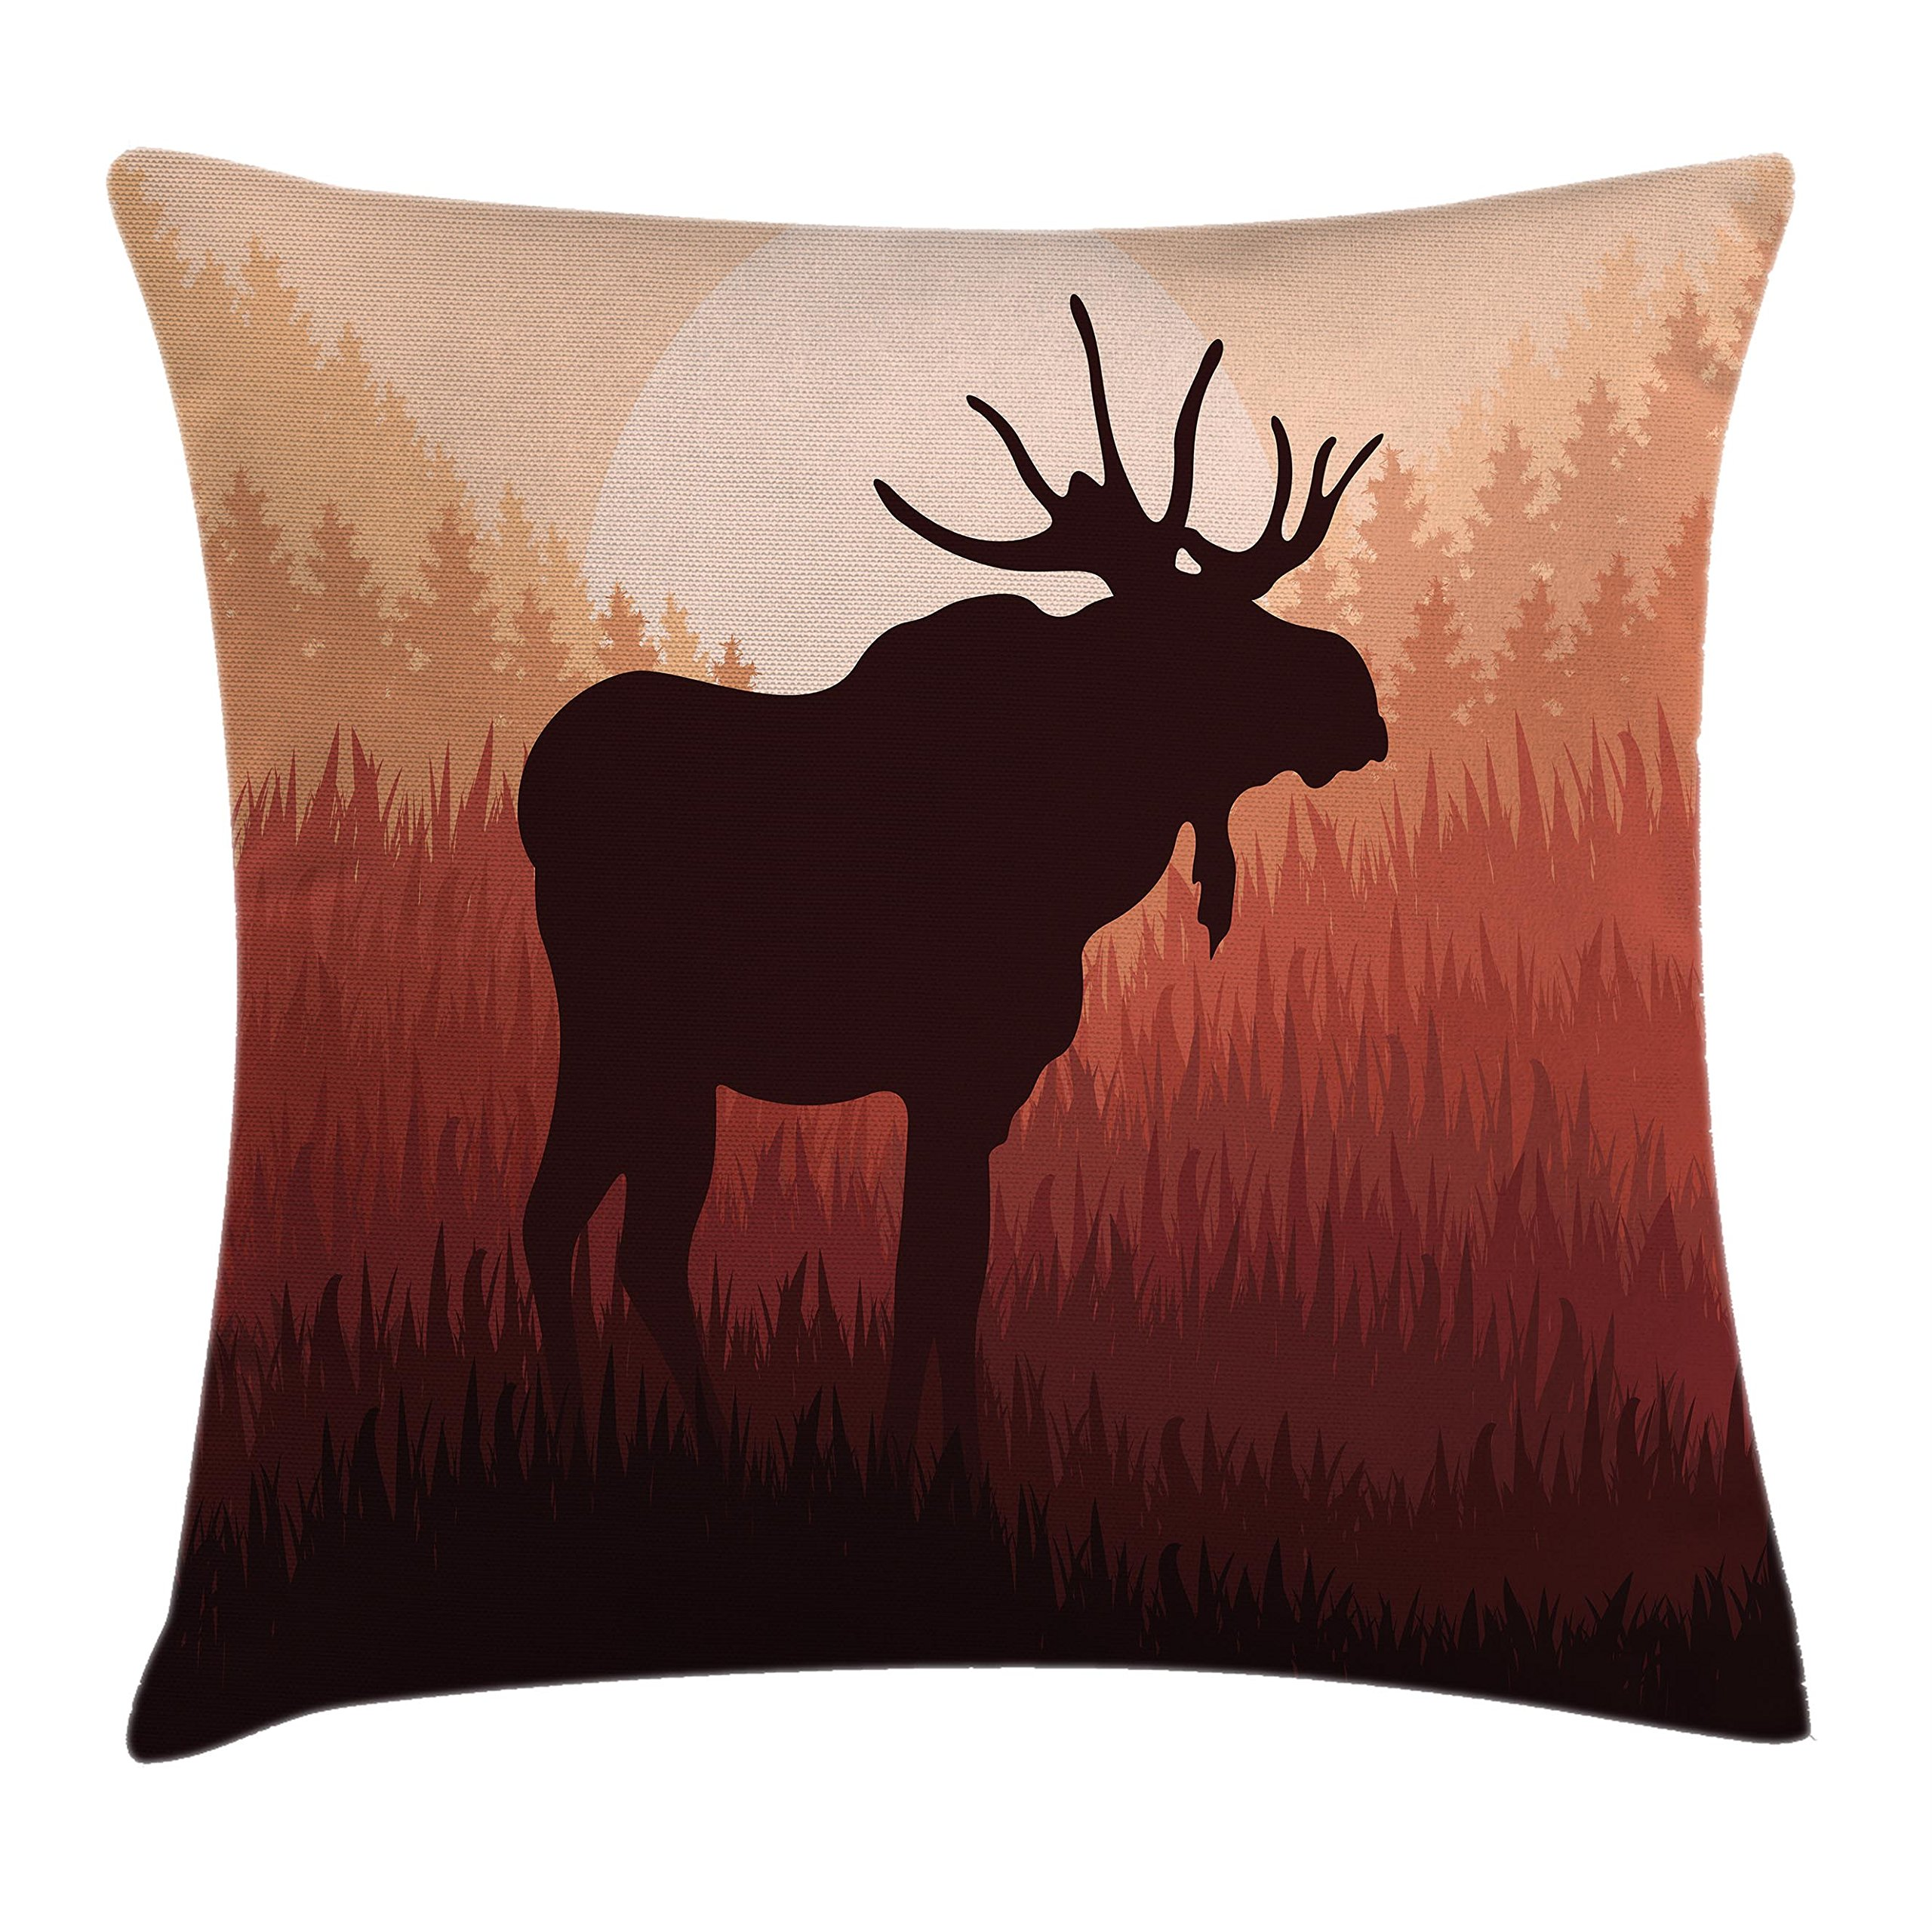 Ambesonne Moose Throw Pillow Cushion Cover, Antlers in Wild Alaska Forest Rusty Abstract Landscape Design Deer Theme Woods, Decorative Square Accent Pillow Case, 16 X 16 inches, Peach and Brown